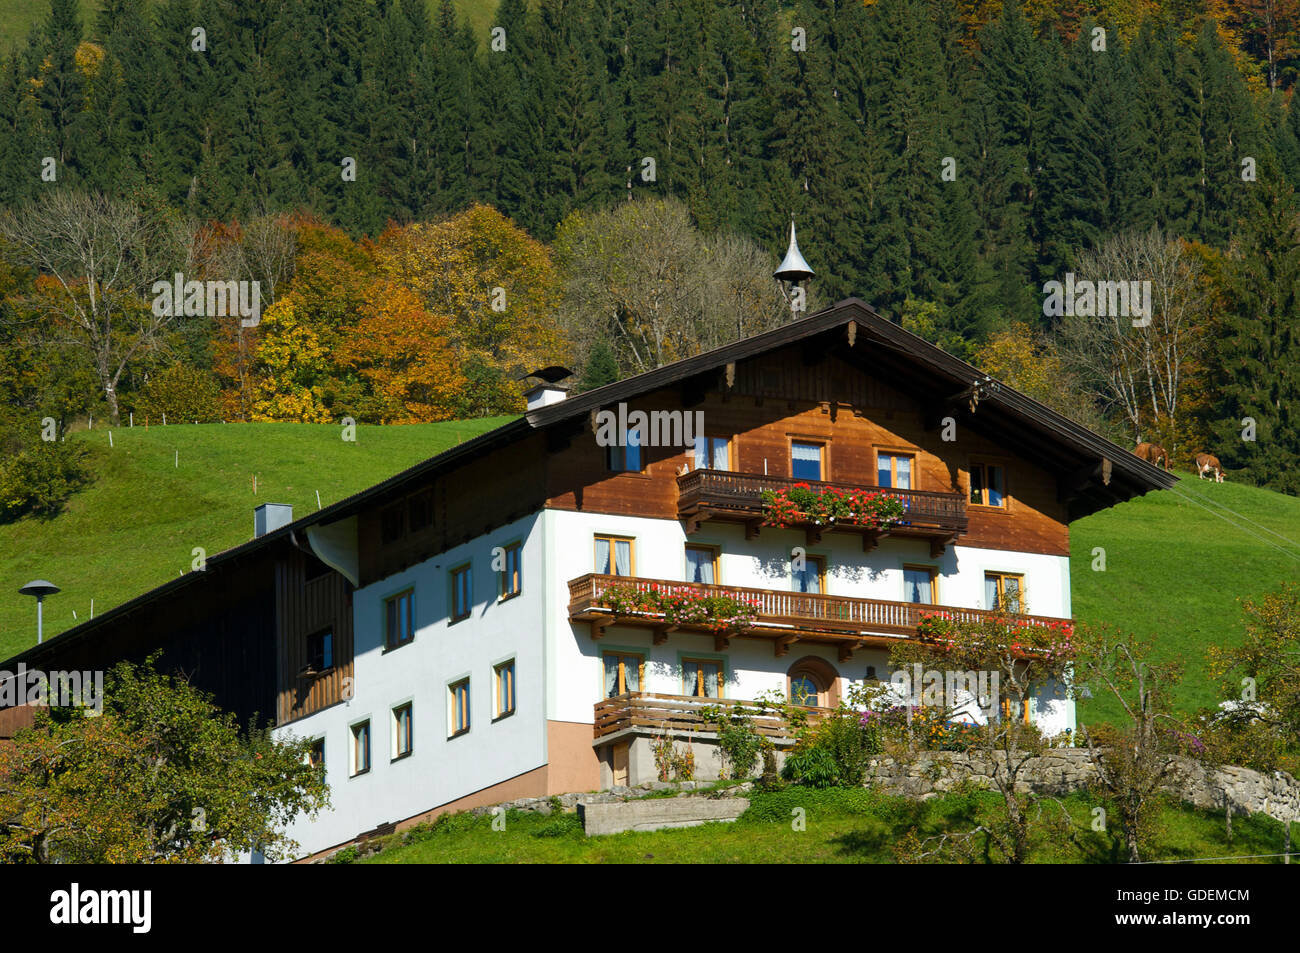 Cottage at Unken, Pinzgau, Salzburger Land, Austria Stock Photo